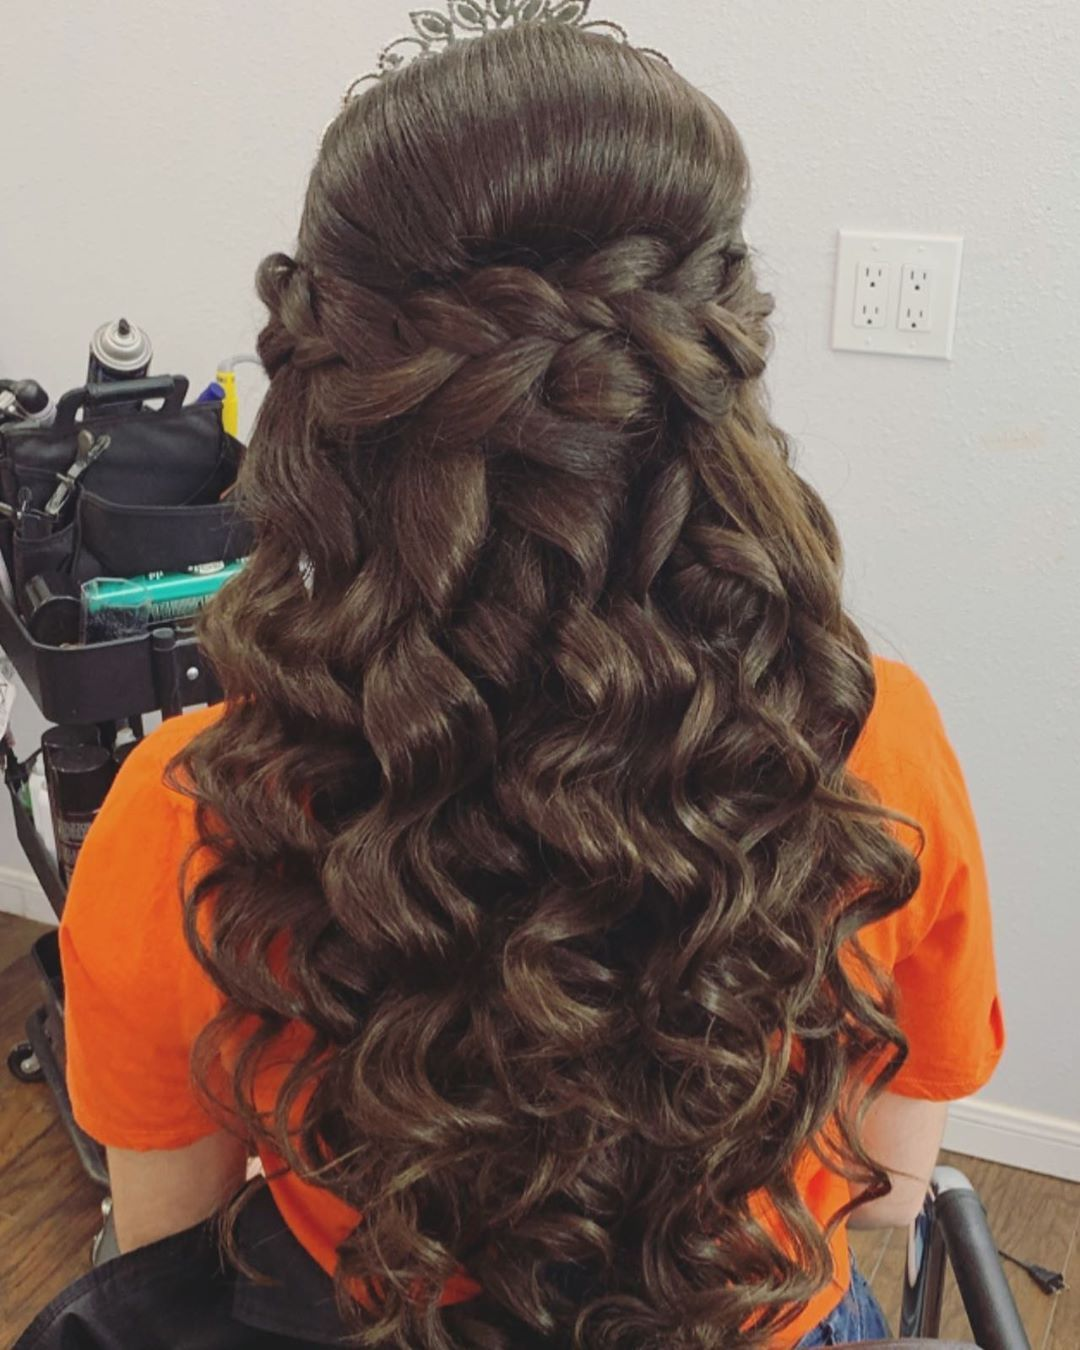 Half Up Half Down Quinceanera Hairstyles Cute Quinceanera Hairstyles In 2020 Hair Styles Down Hairstyles For Long Hair Quince Hairstyles